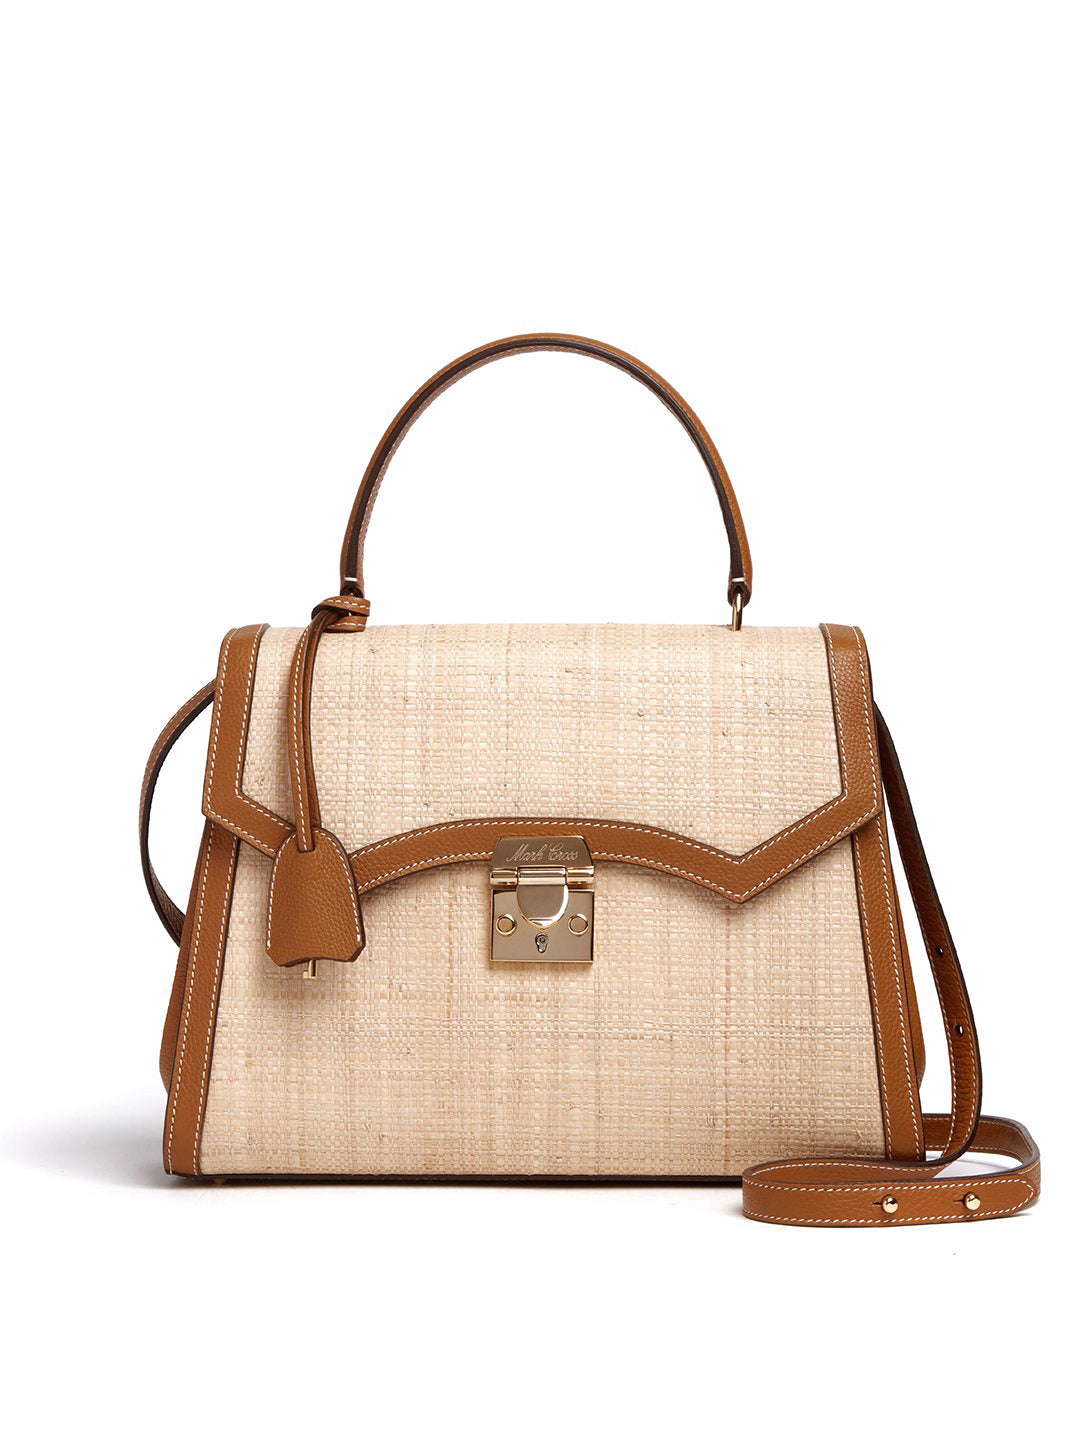 Madeline Lady Raffia & Leather Top Handle Bag